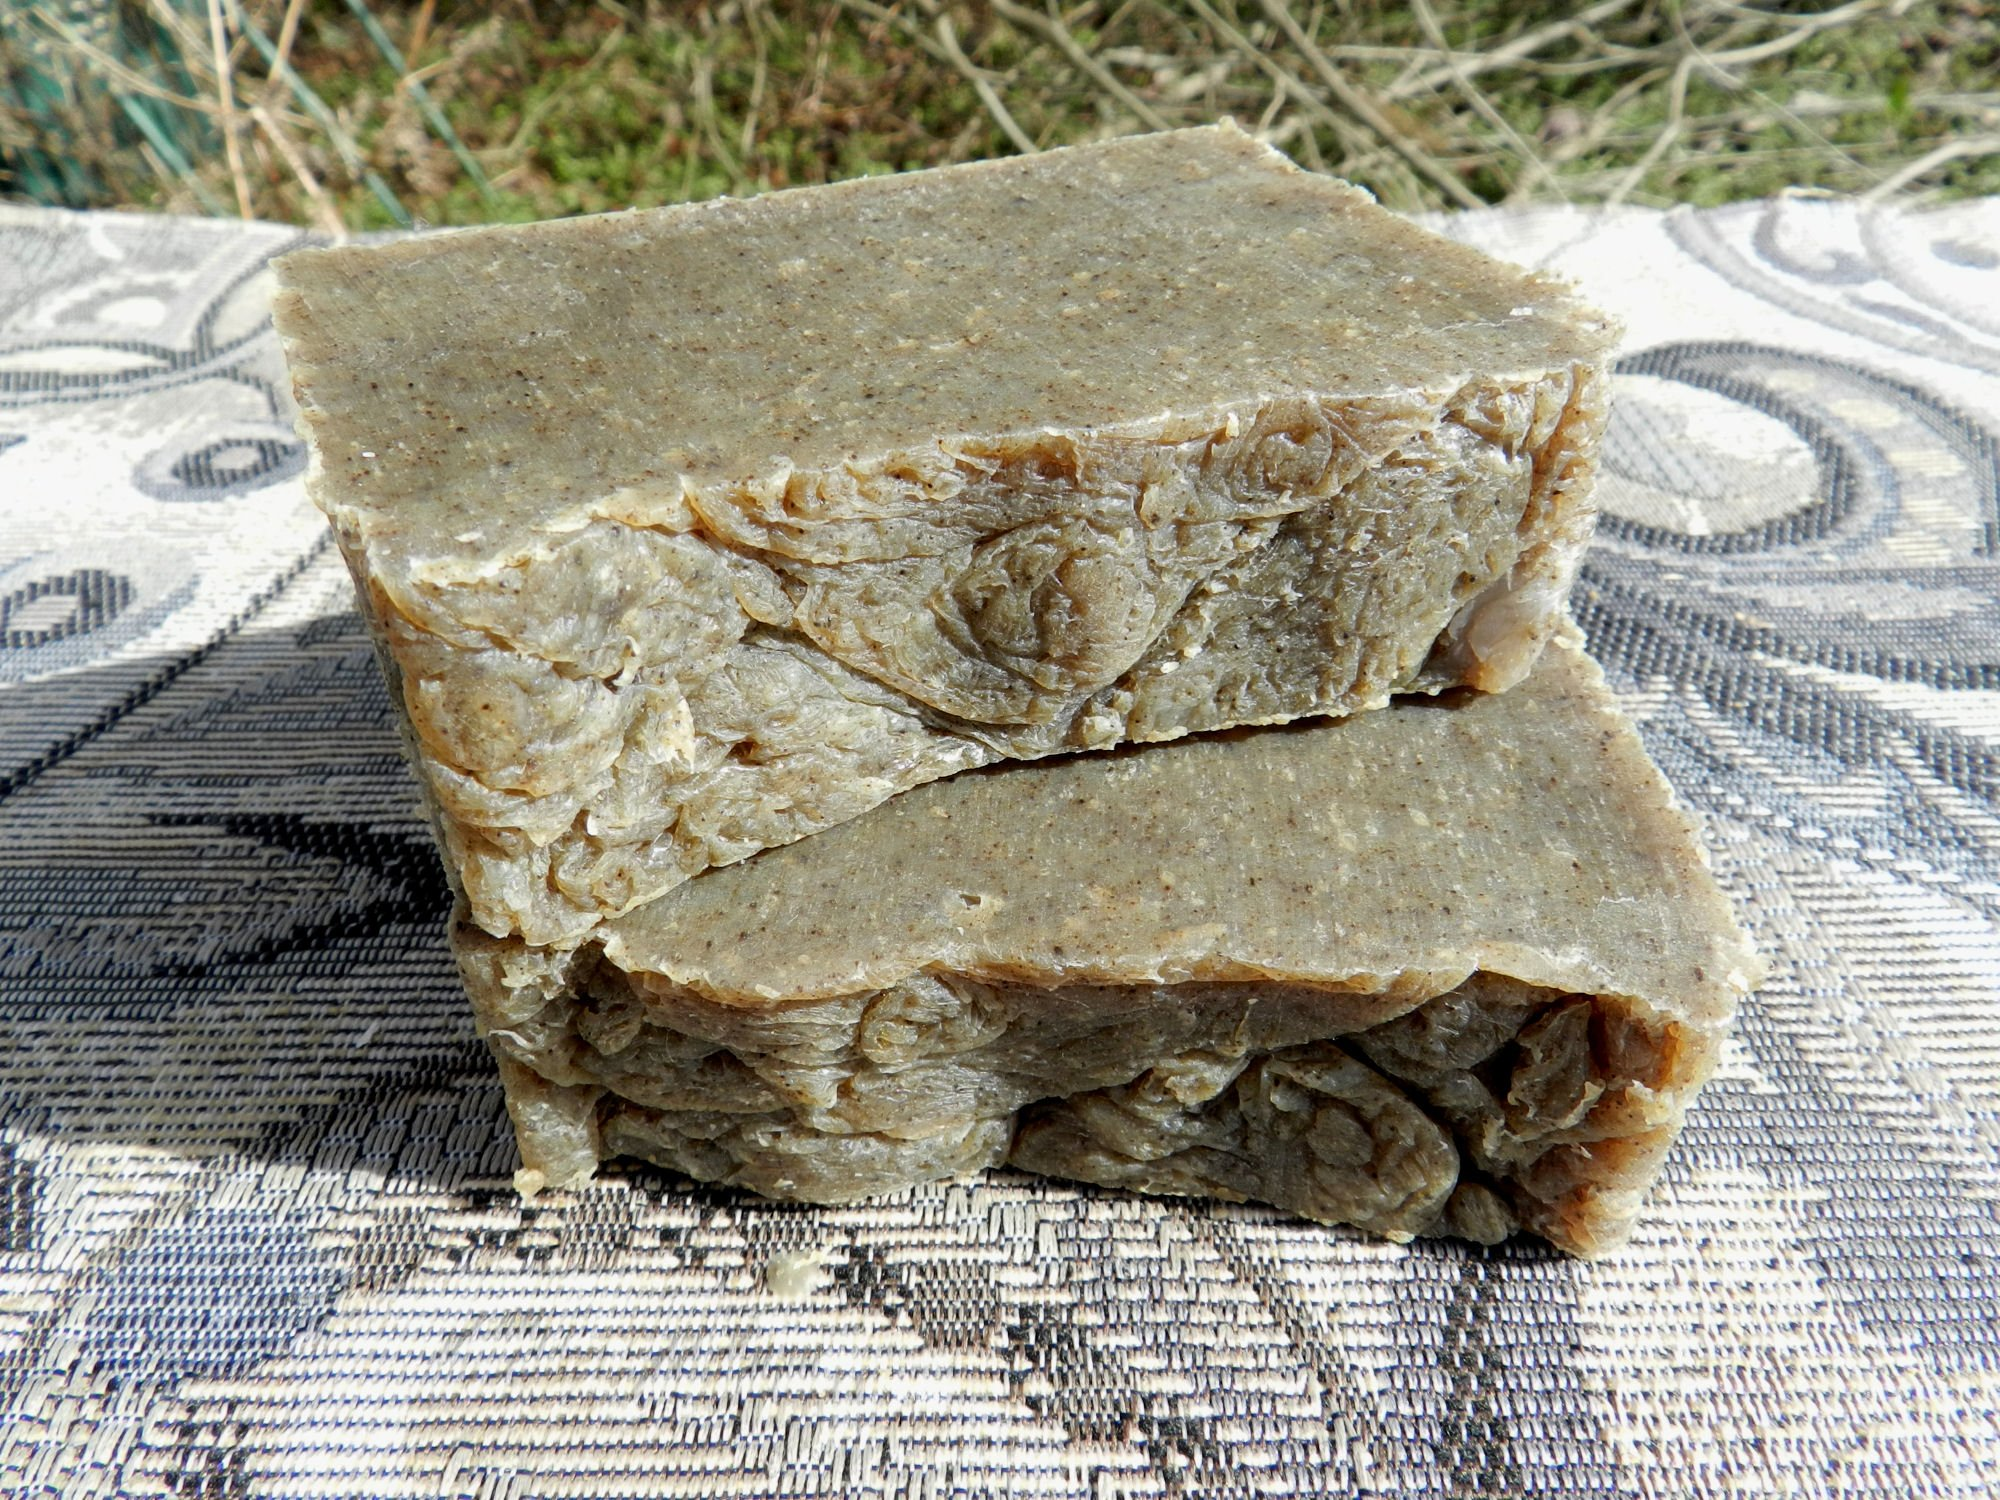 Two Solid Shampoo Bars with Rosemary Tea Tree and Dead Sea Salt for Oily or Greasy Hair Types with Essential Oils